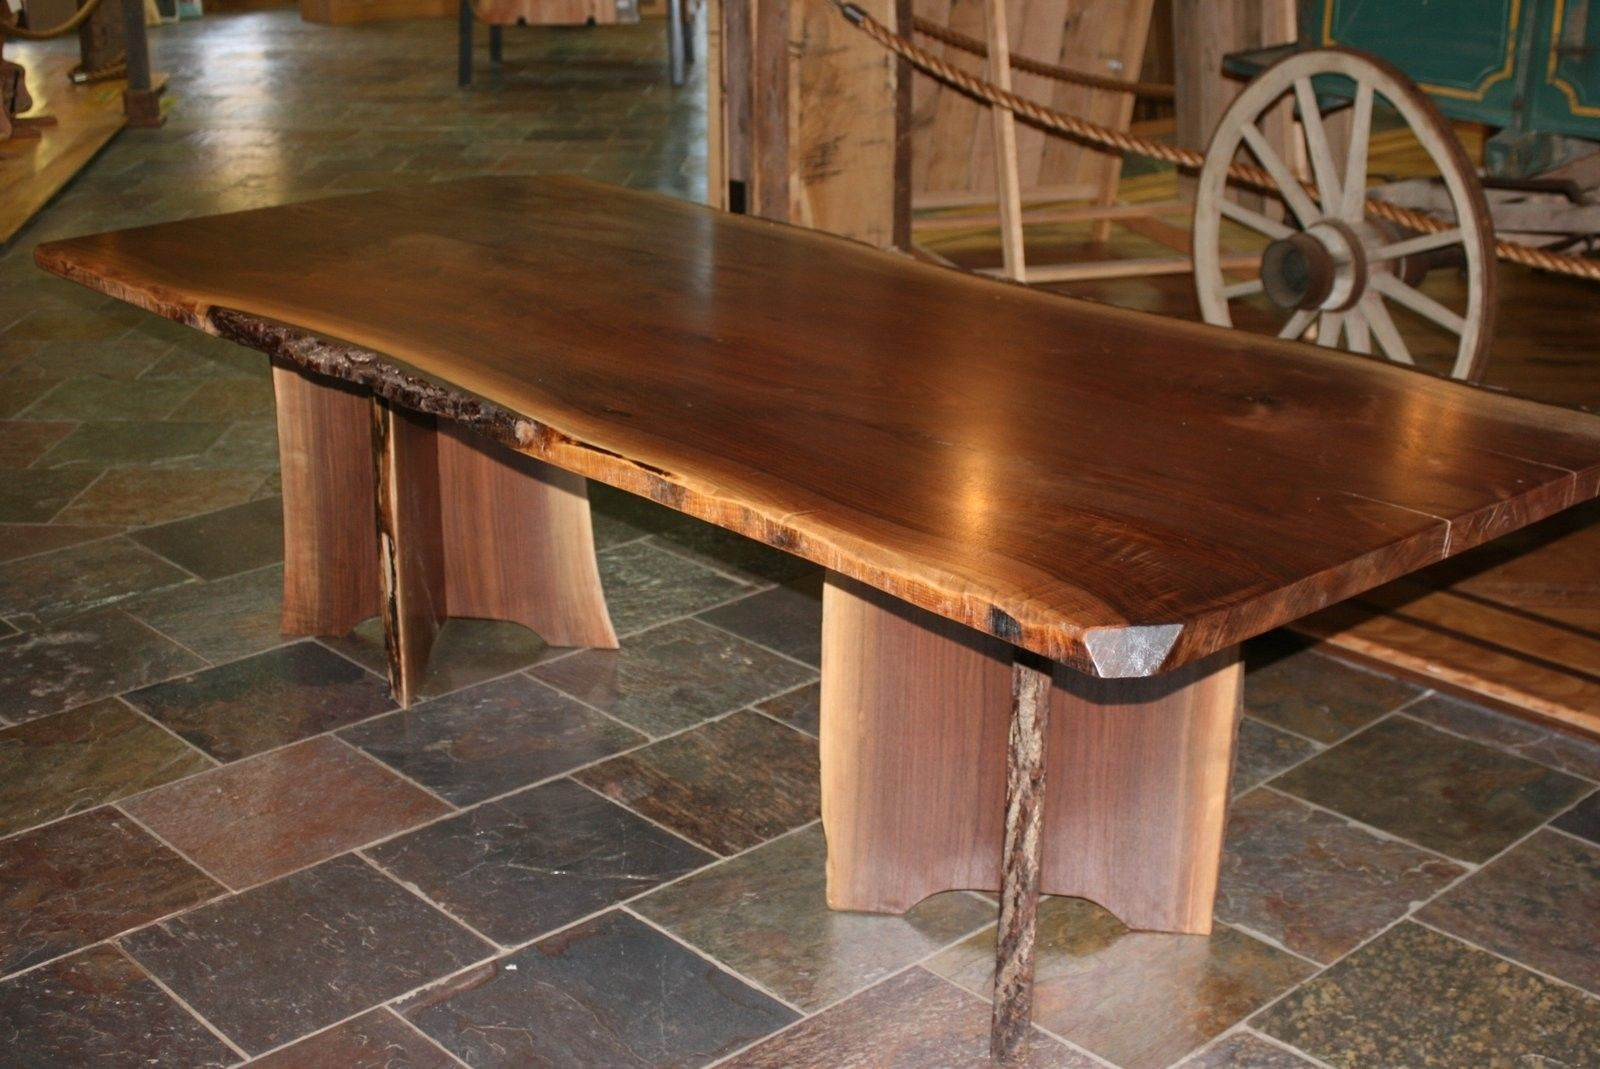 Handmade Live Edge Walnut Slab Dining Table by Corey